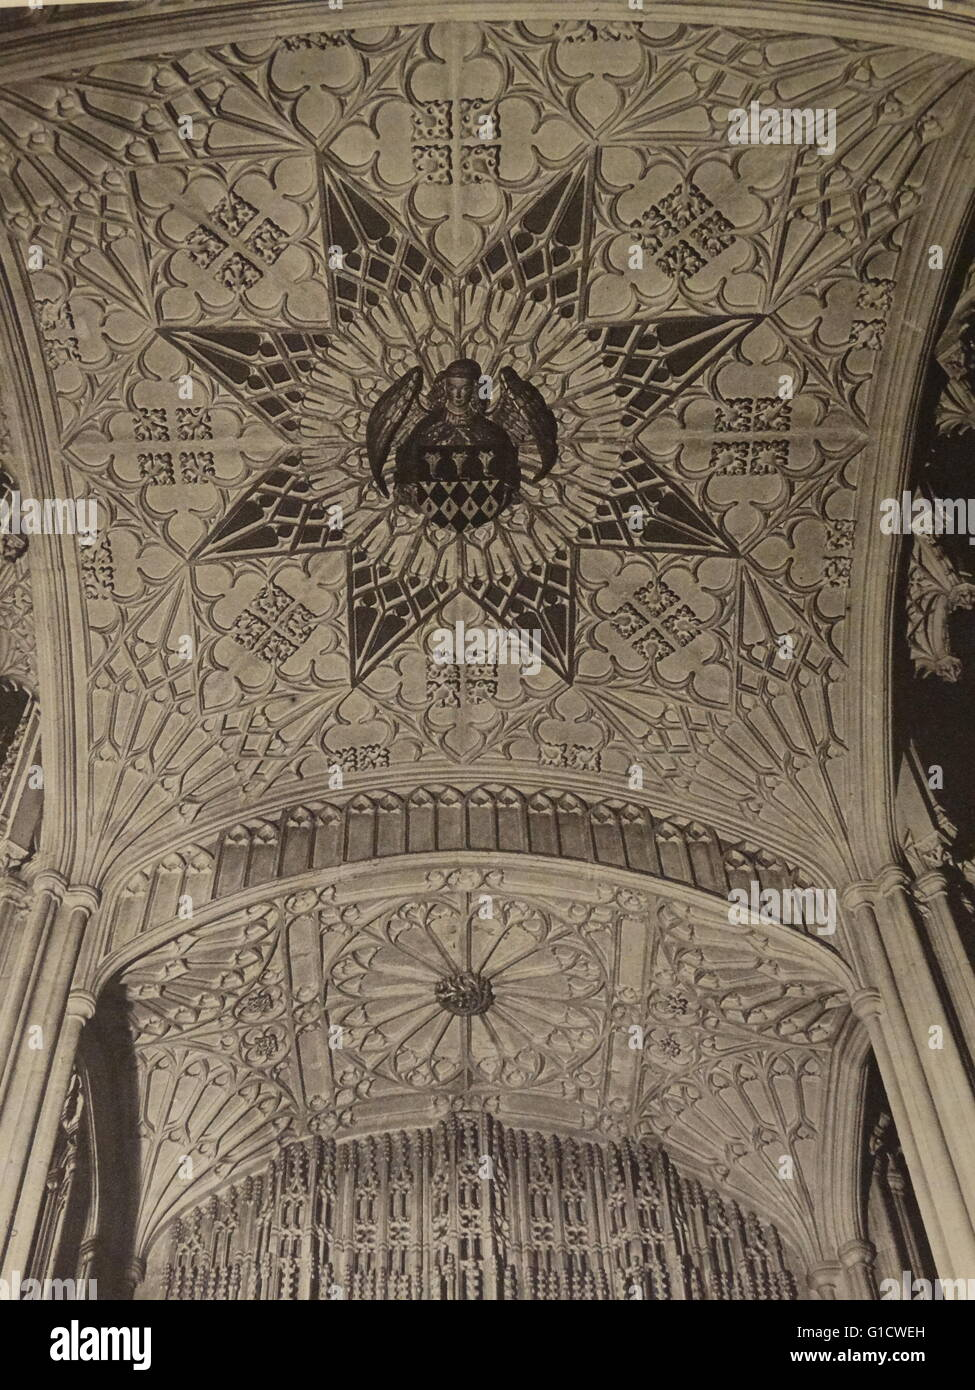 Photographic print of the stone canopy above the effigy of Bishop Wayneflete. Dated 20th Century - Stock Image